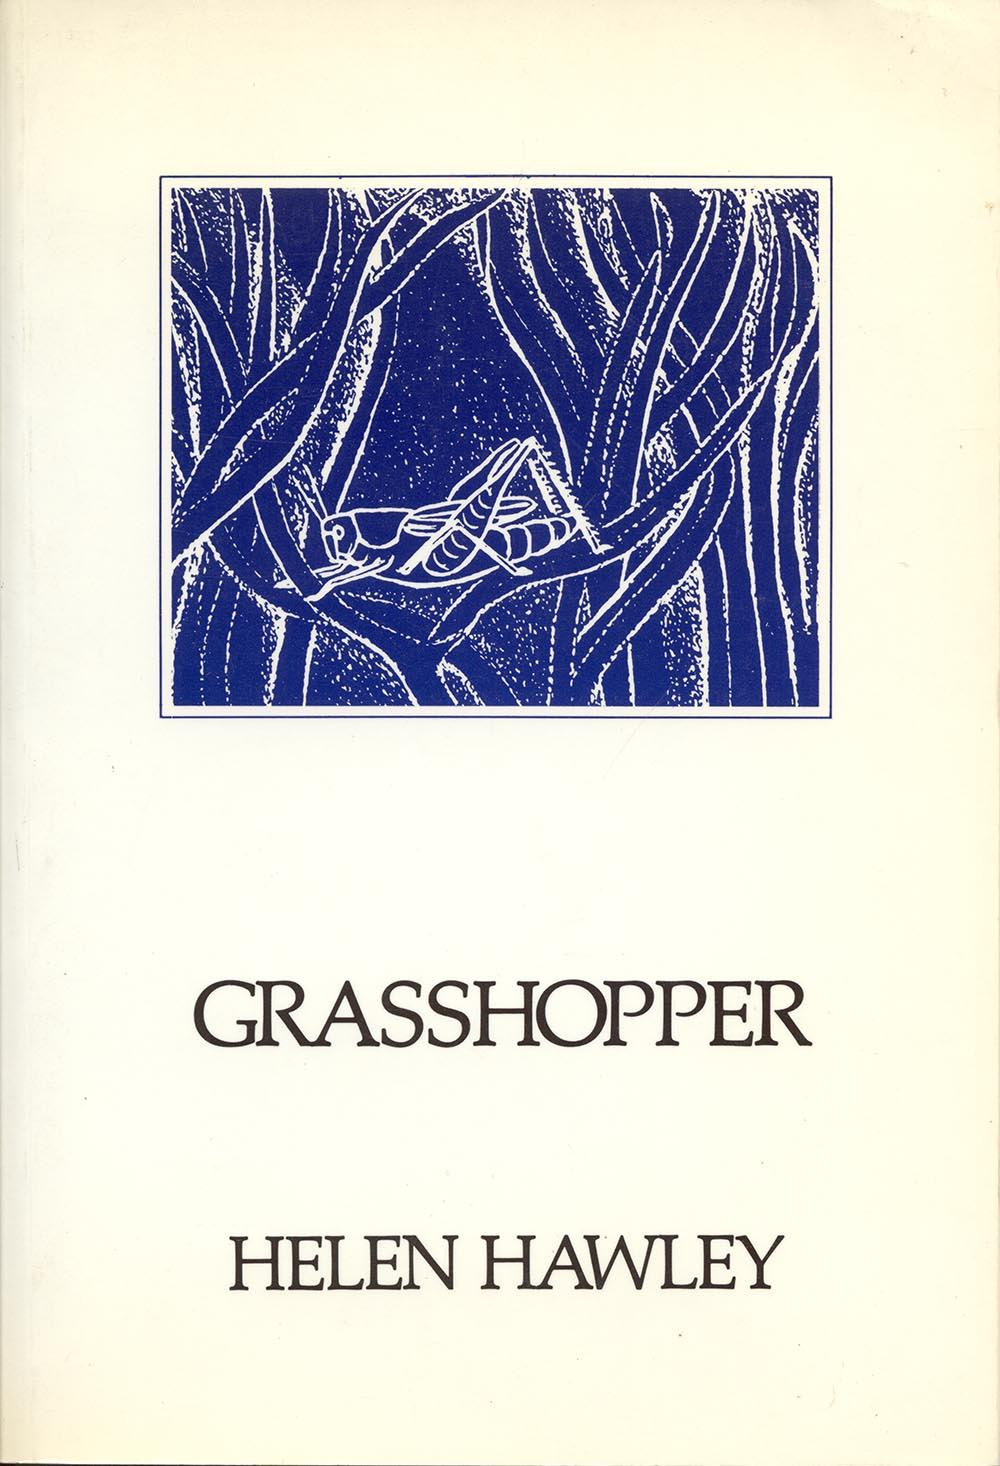 Grasshopper by Helen Hawley